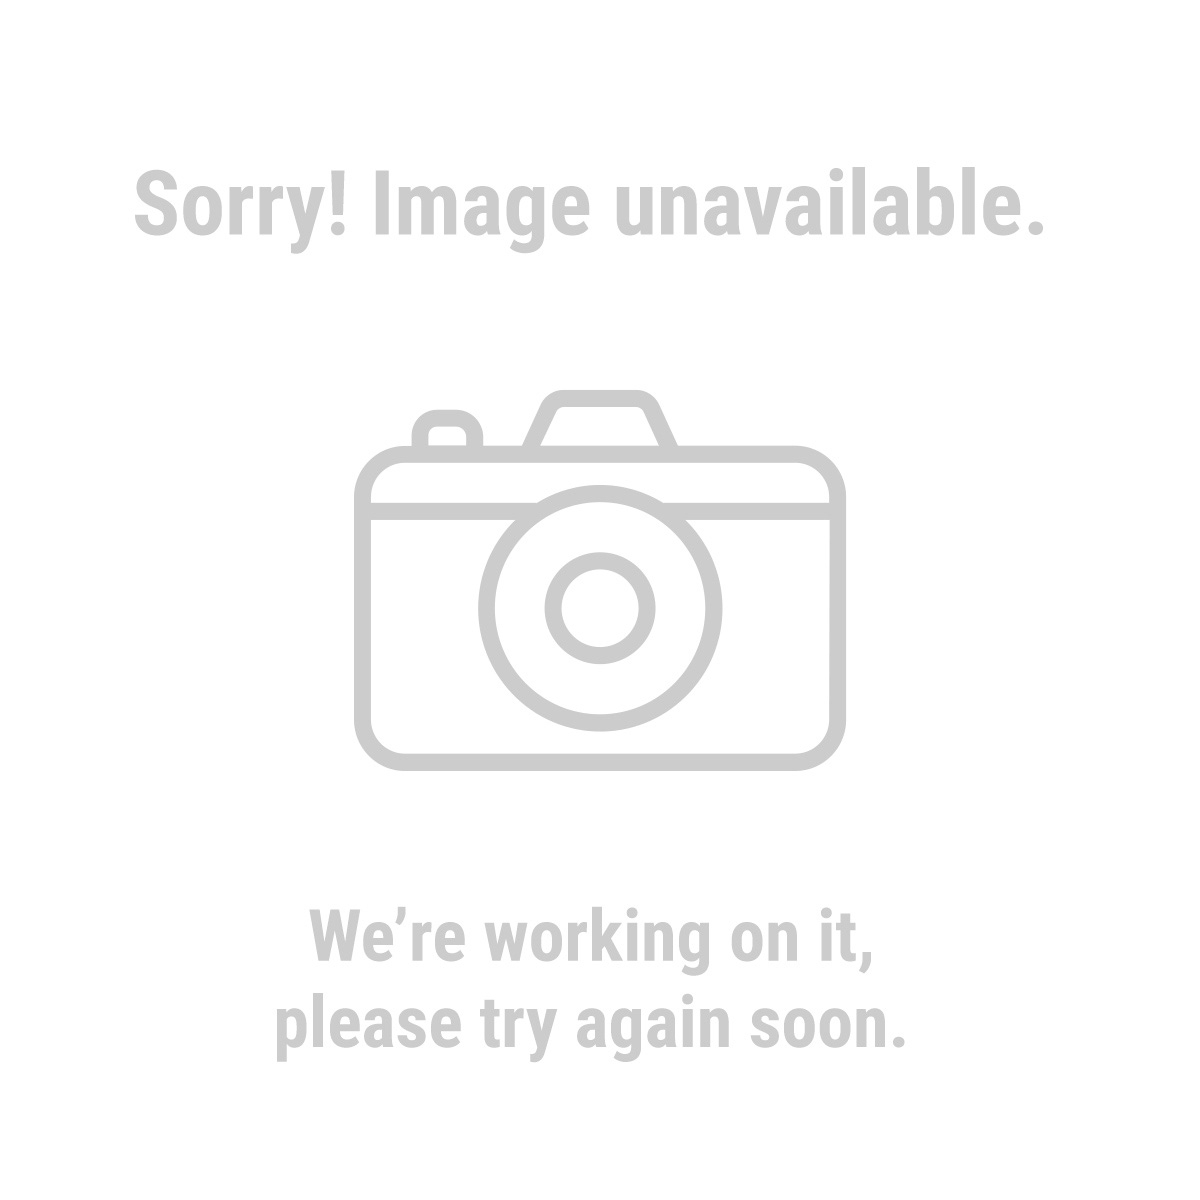 Central Hydraulics® 36396 3 Ton Heavy Duty Long Ram Hydraulic Jack